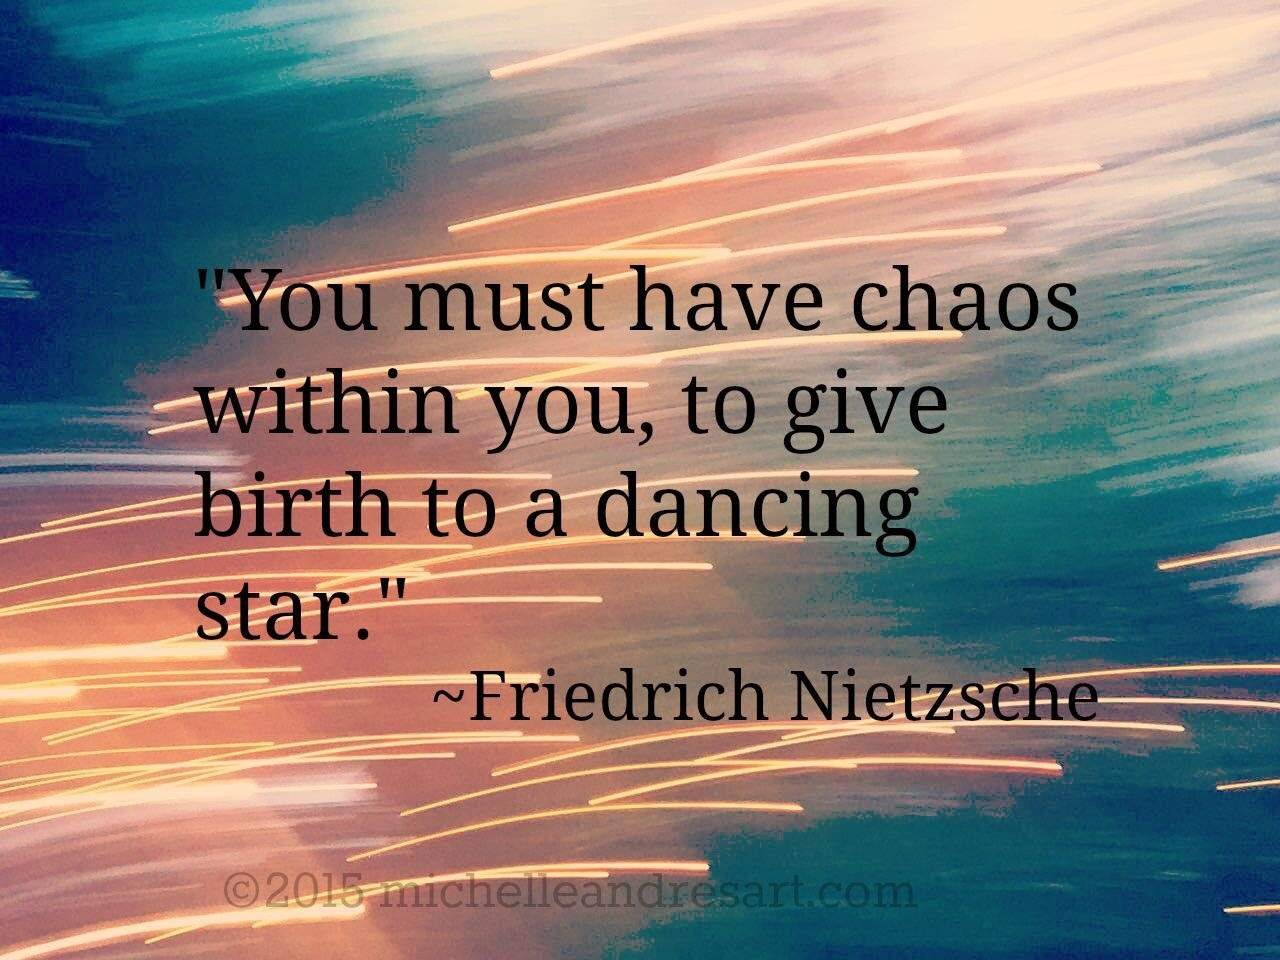 This quote so fired my mood today...just keep dancing...